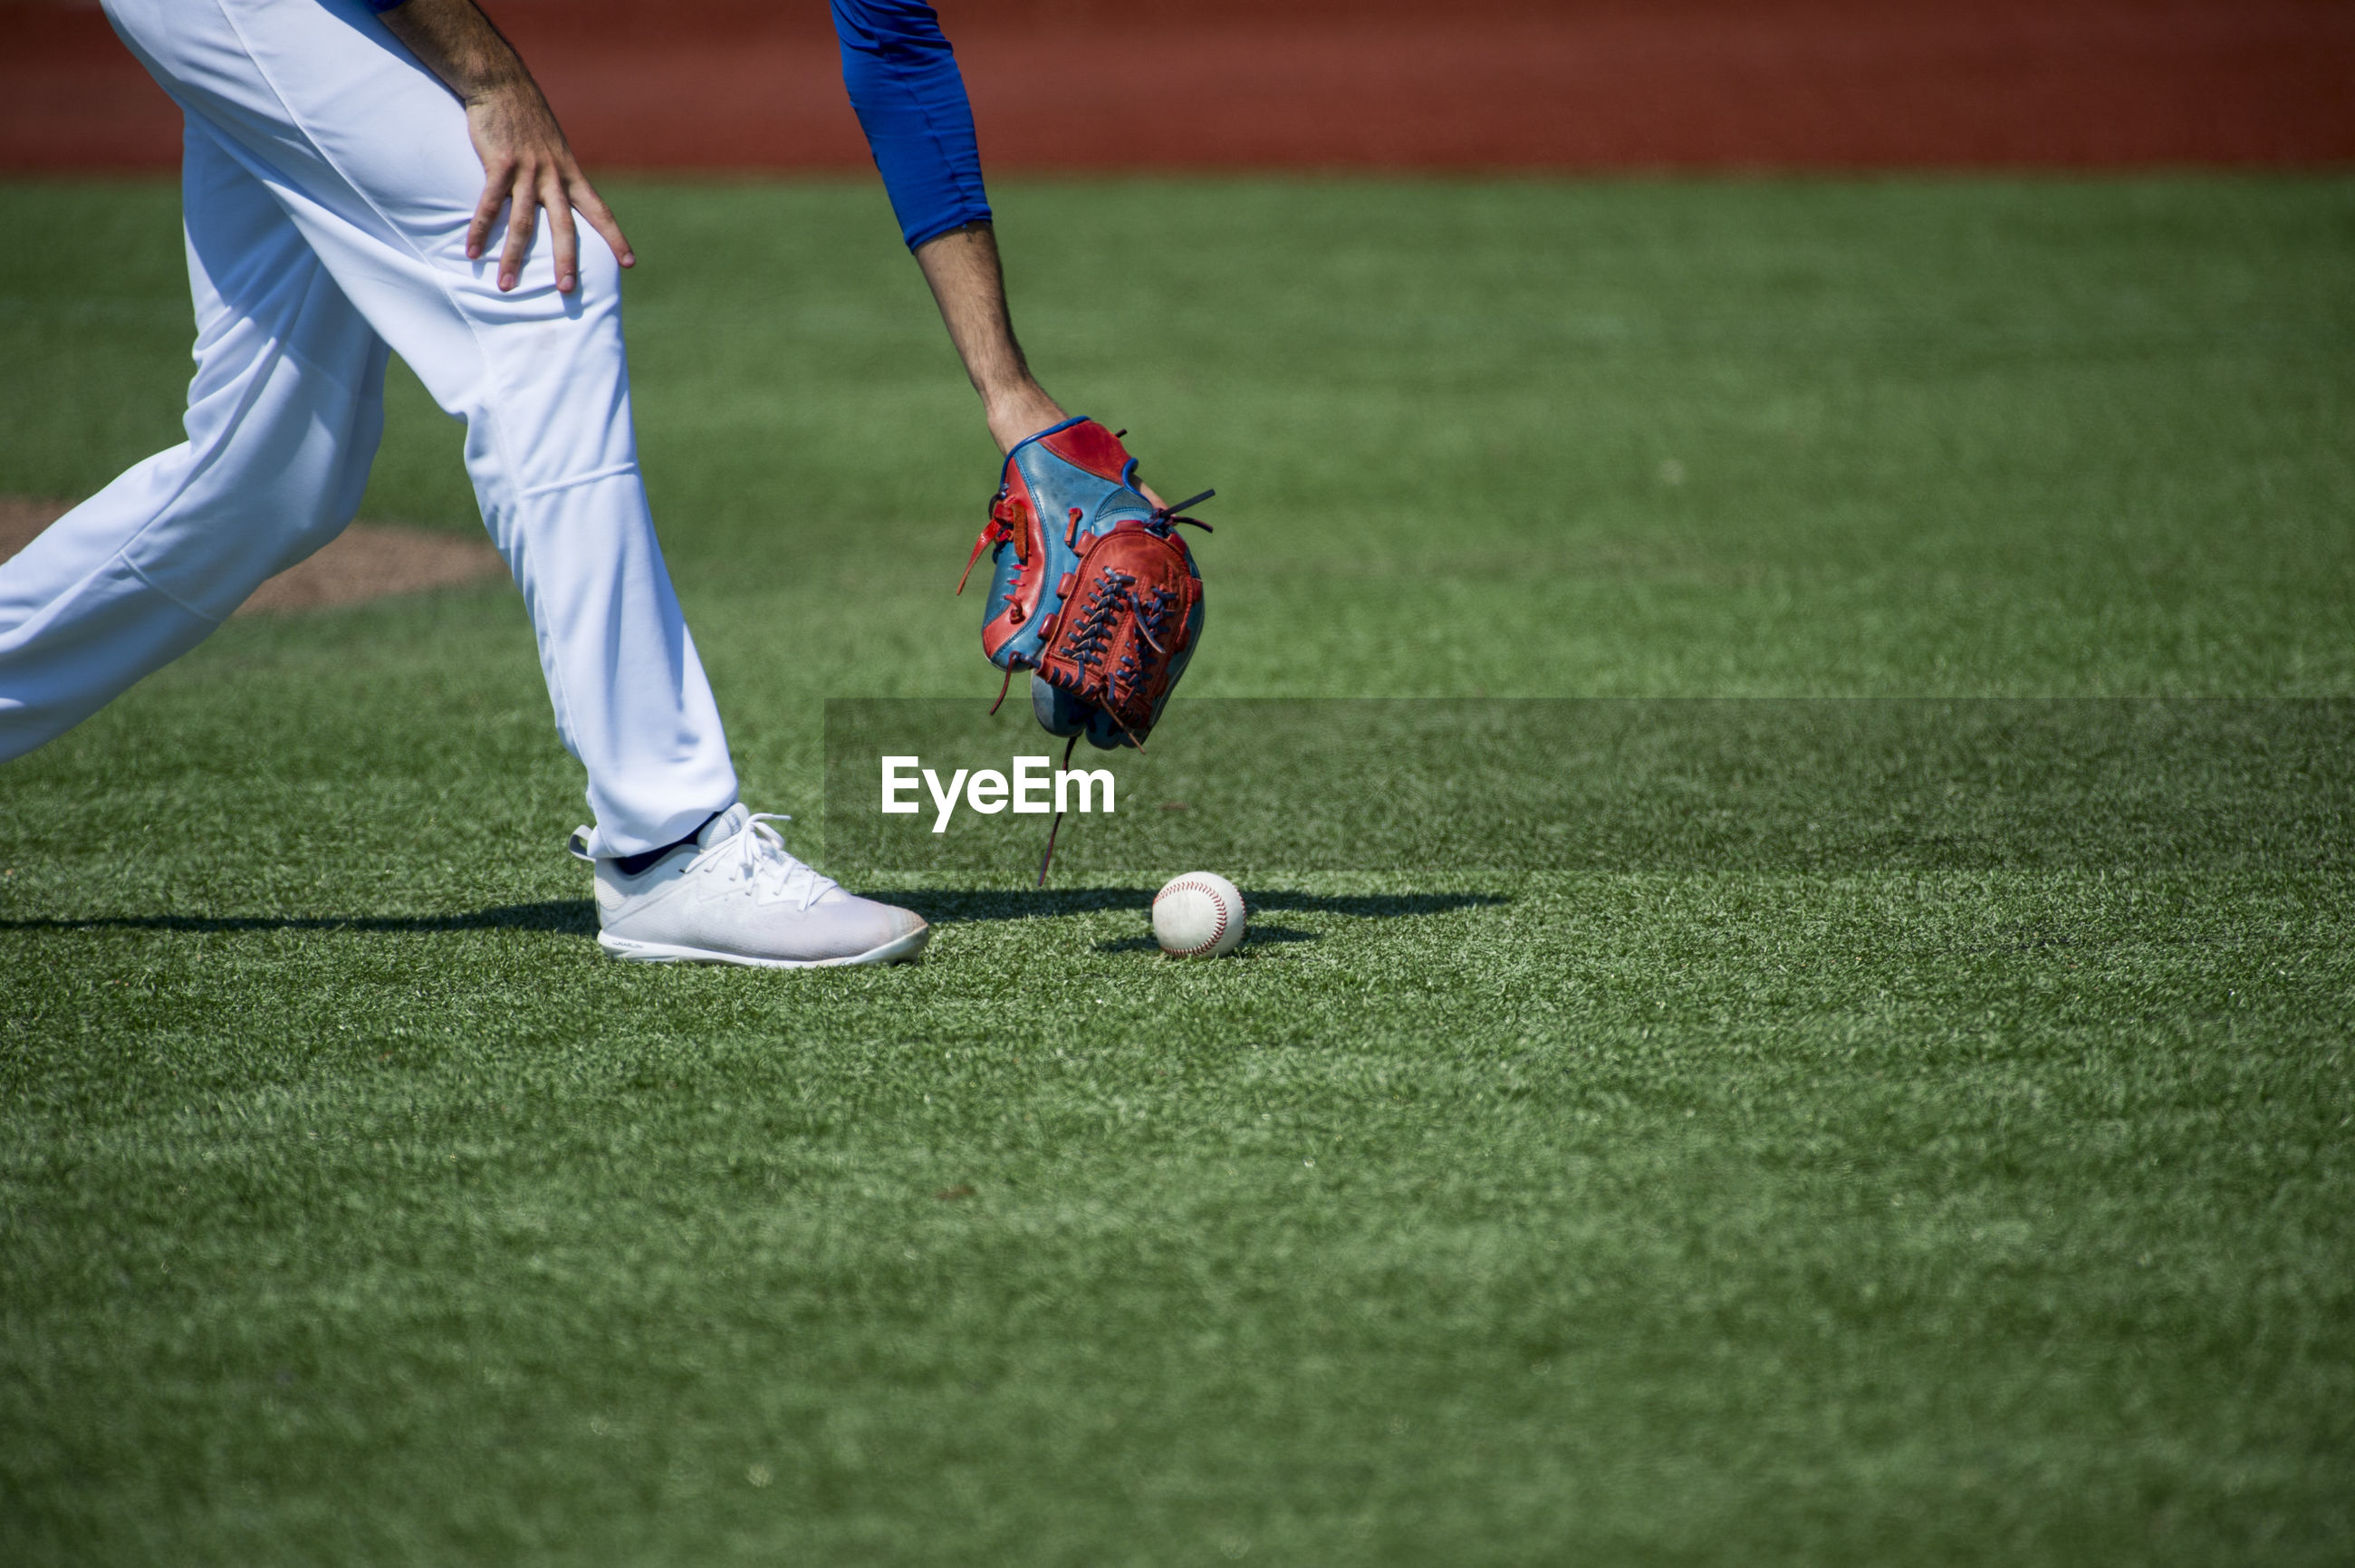 Low section of player picking baseball on grass